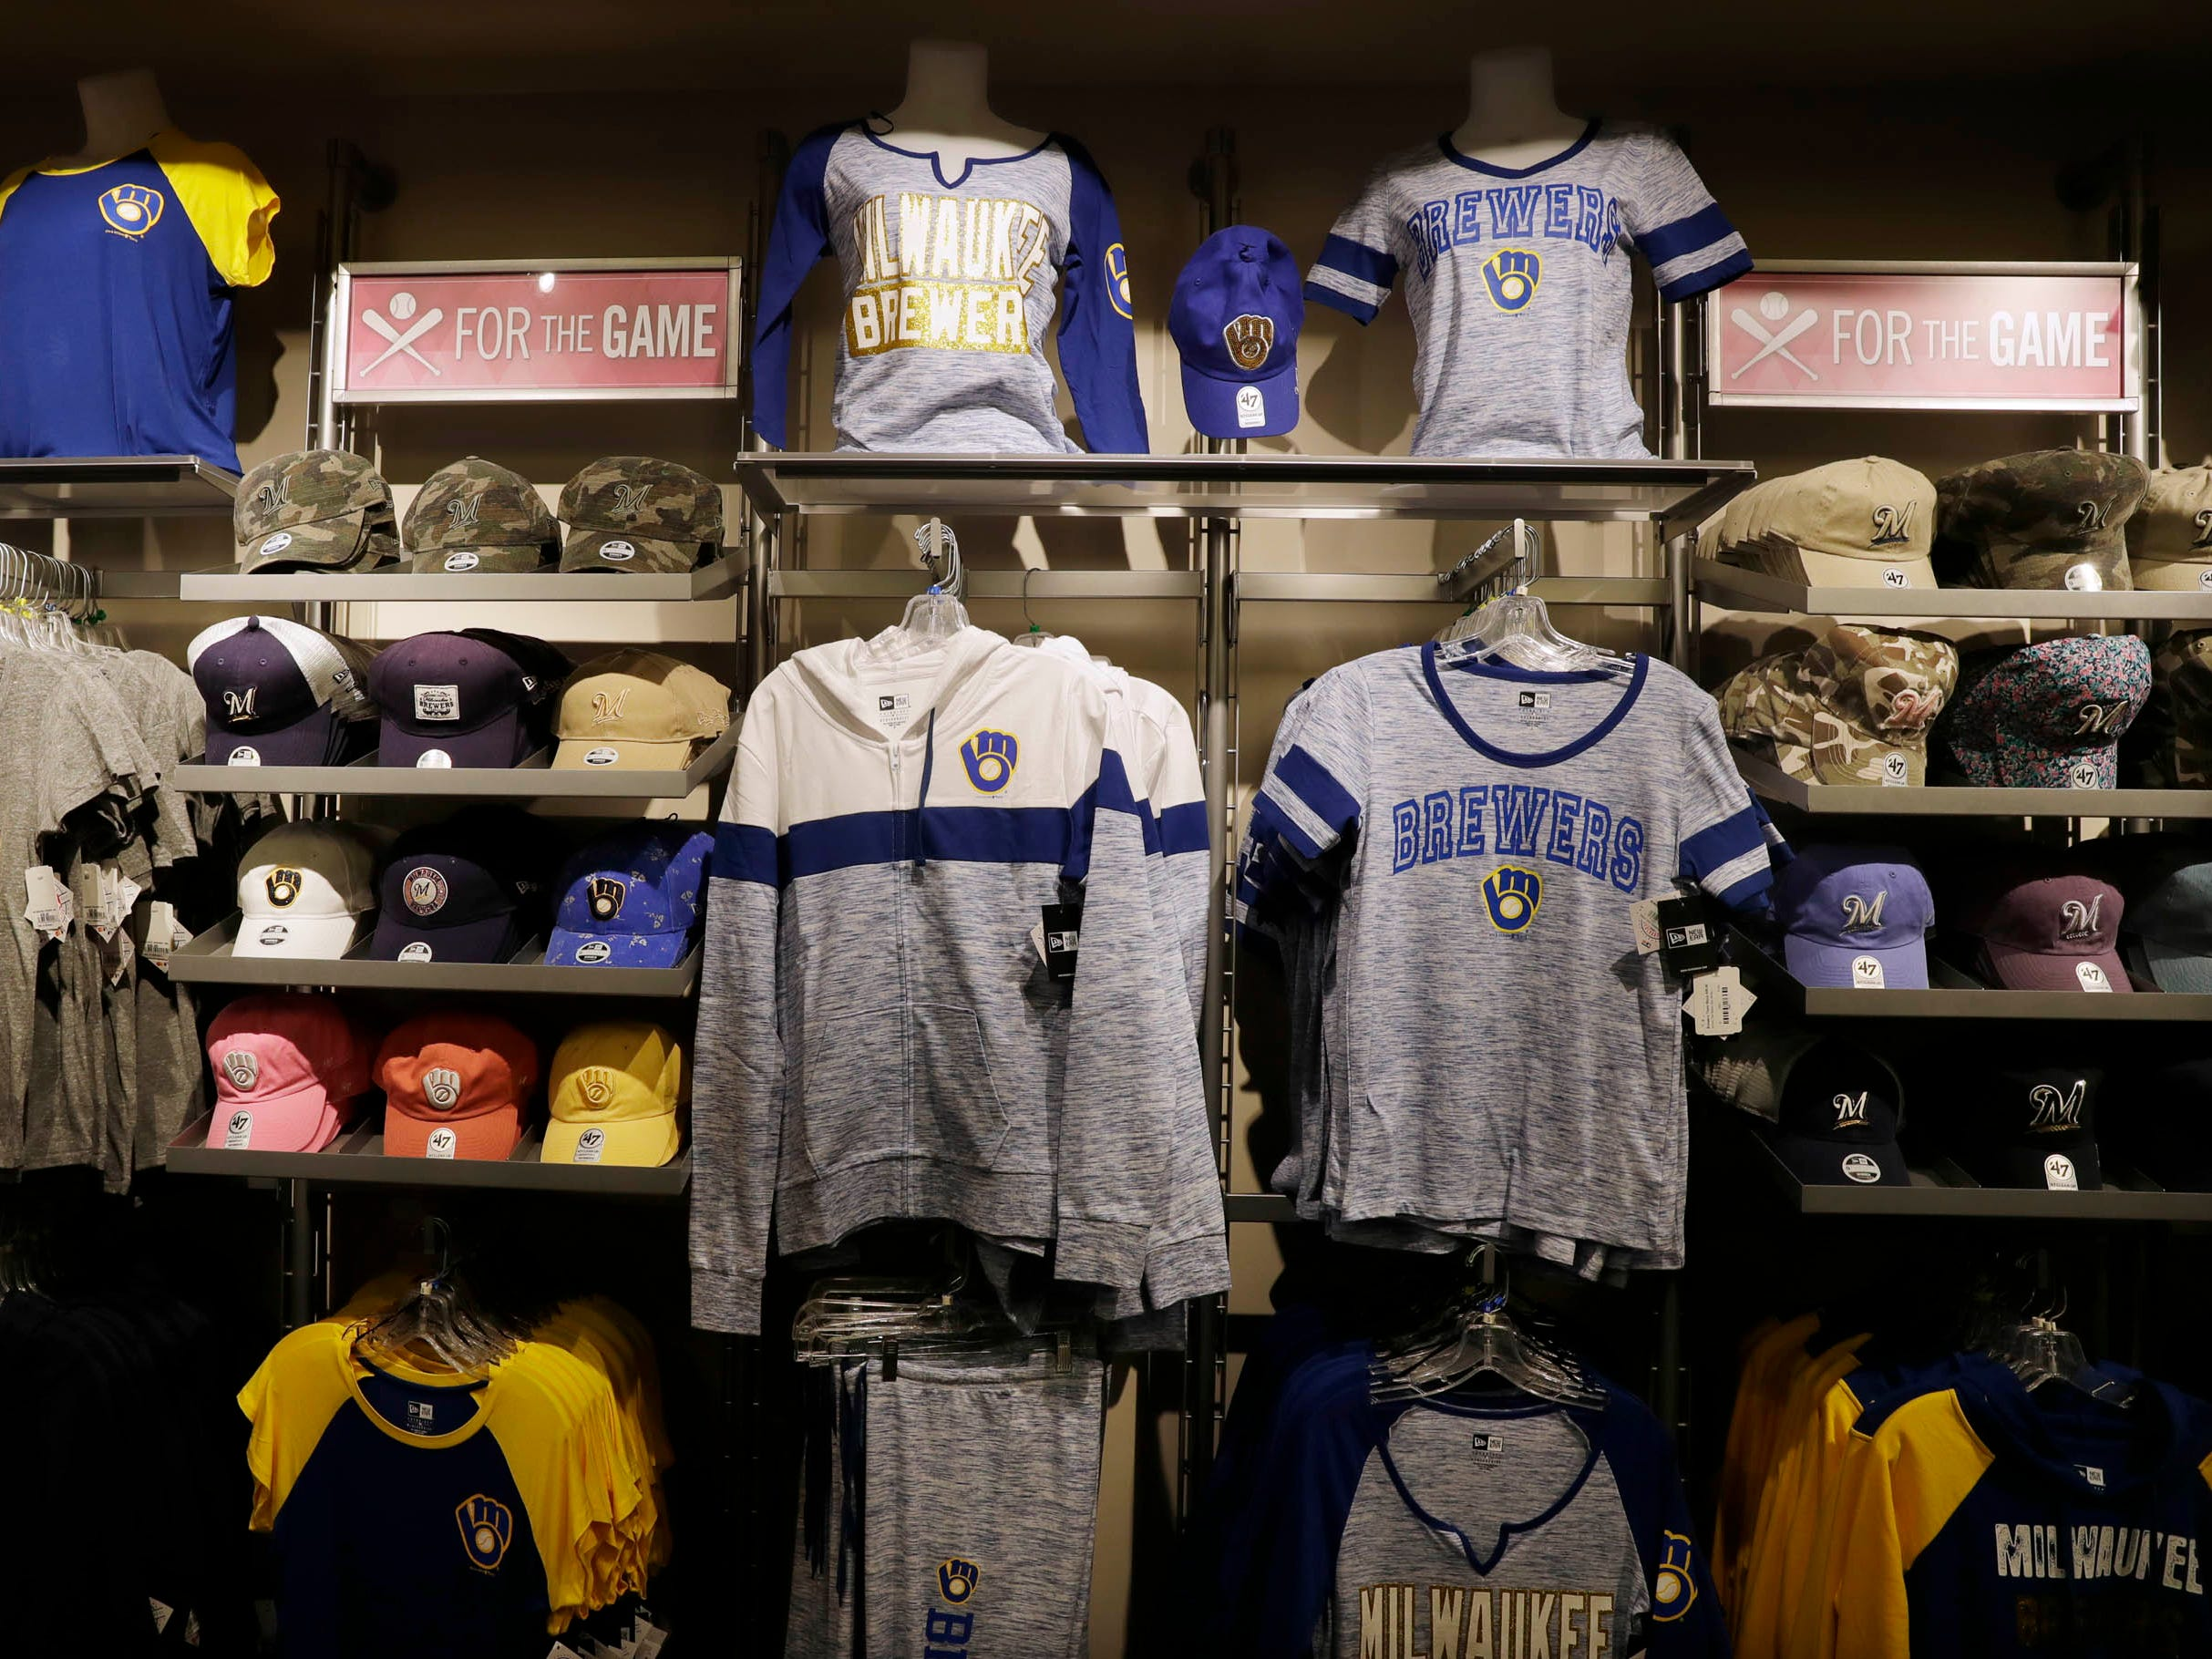 Women's apparel is changing too, with new vendors and trendy looks, at the Milwaukee Brewers team store at Miller Park.